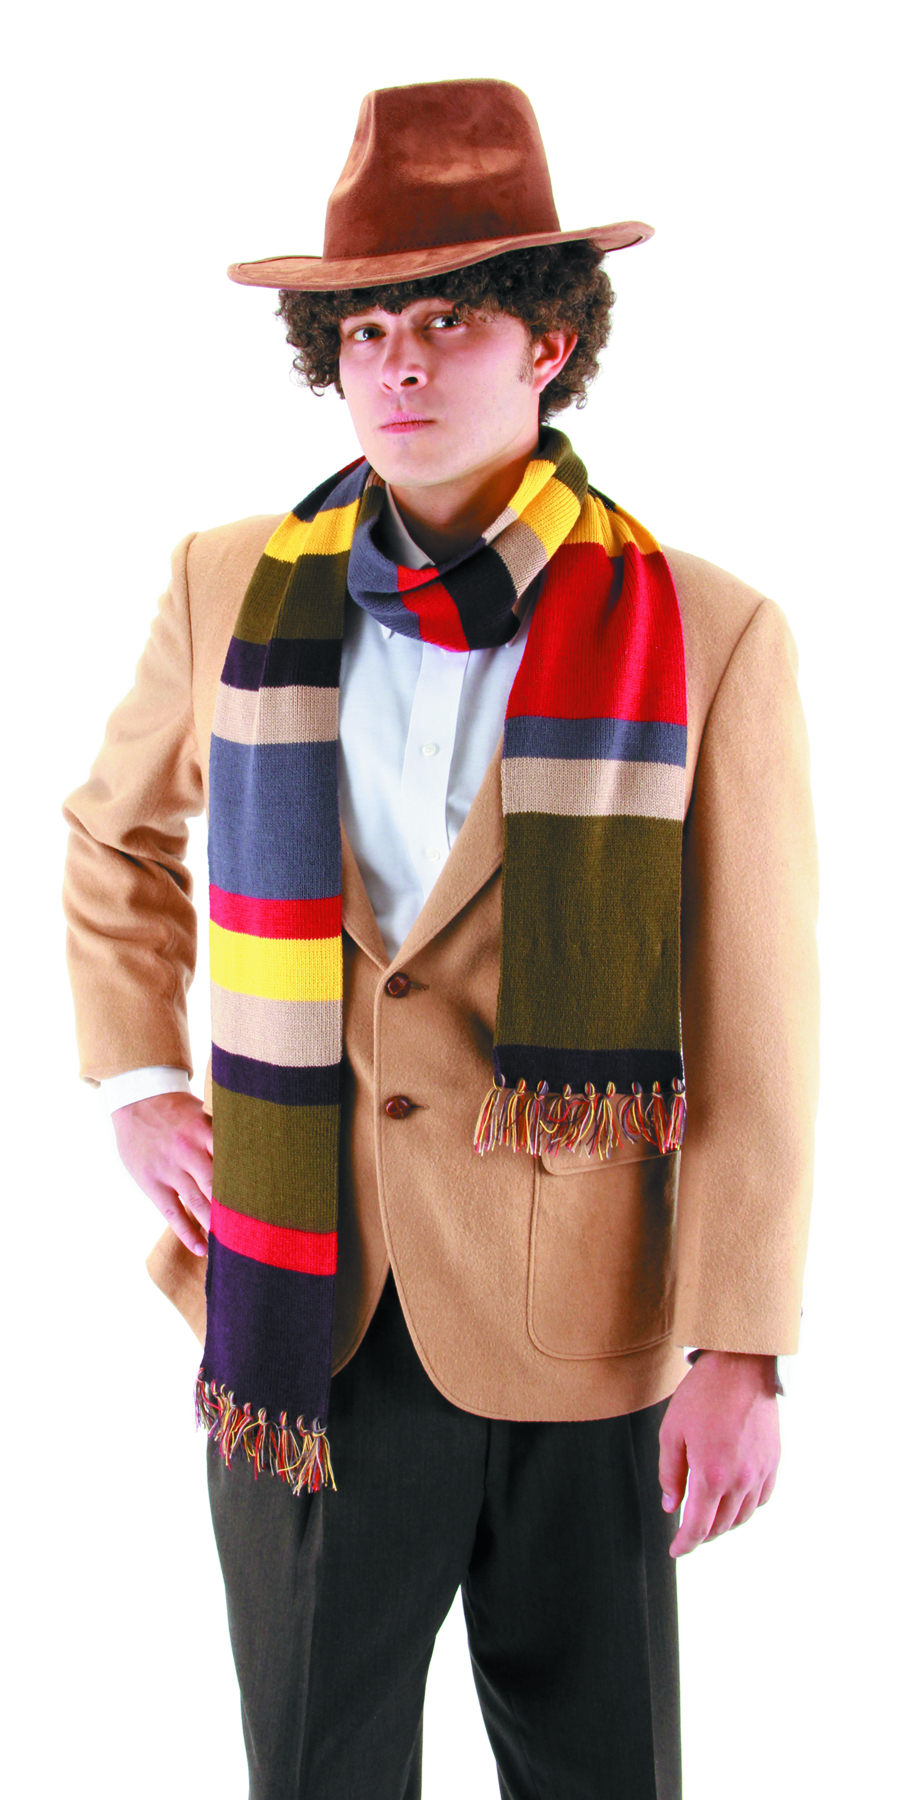 DOCTOR WHO 4TH DOCTOR SCARF 6 FT